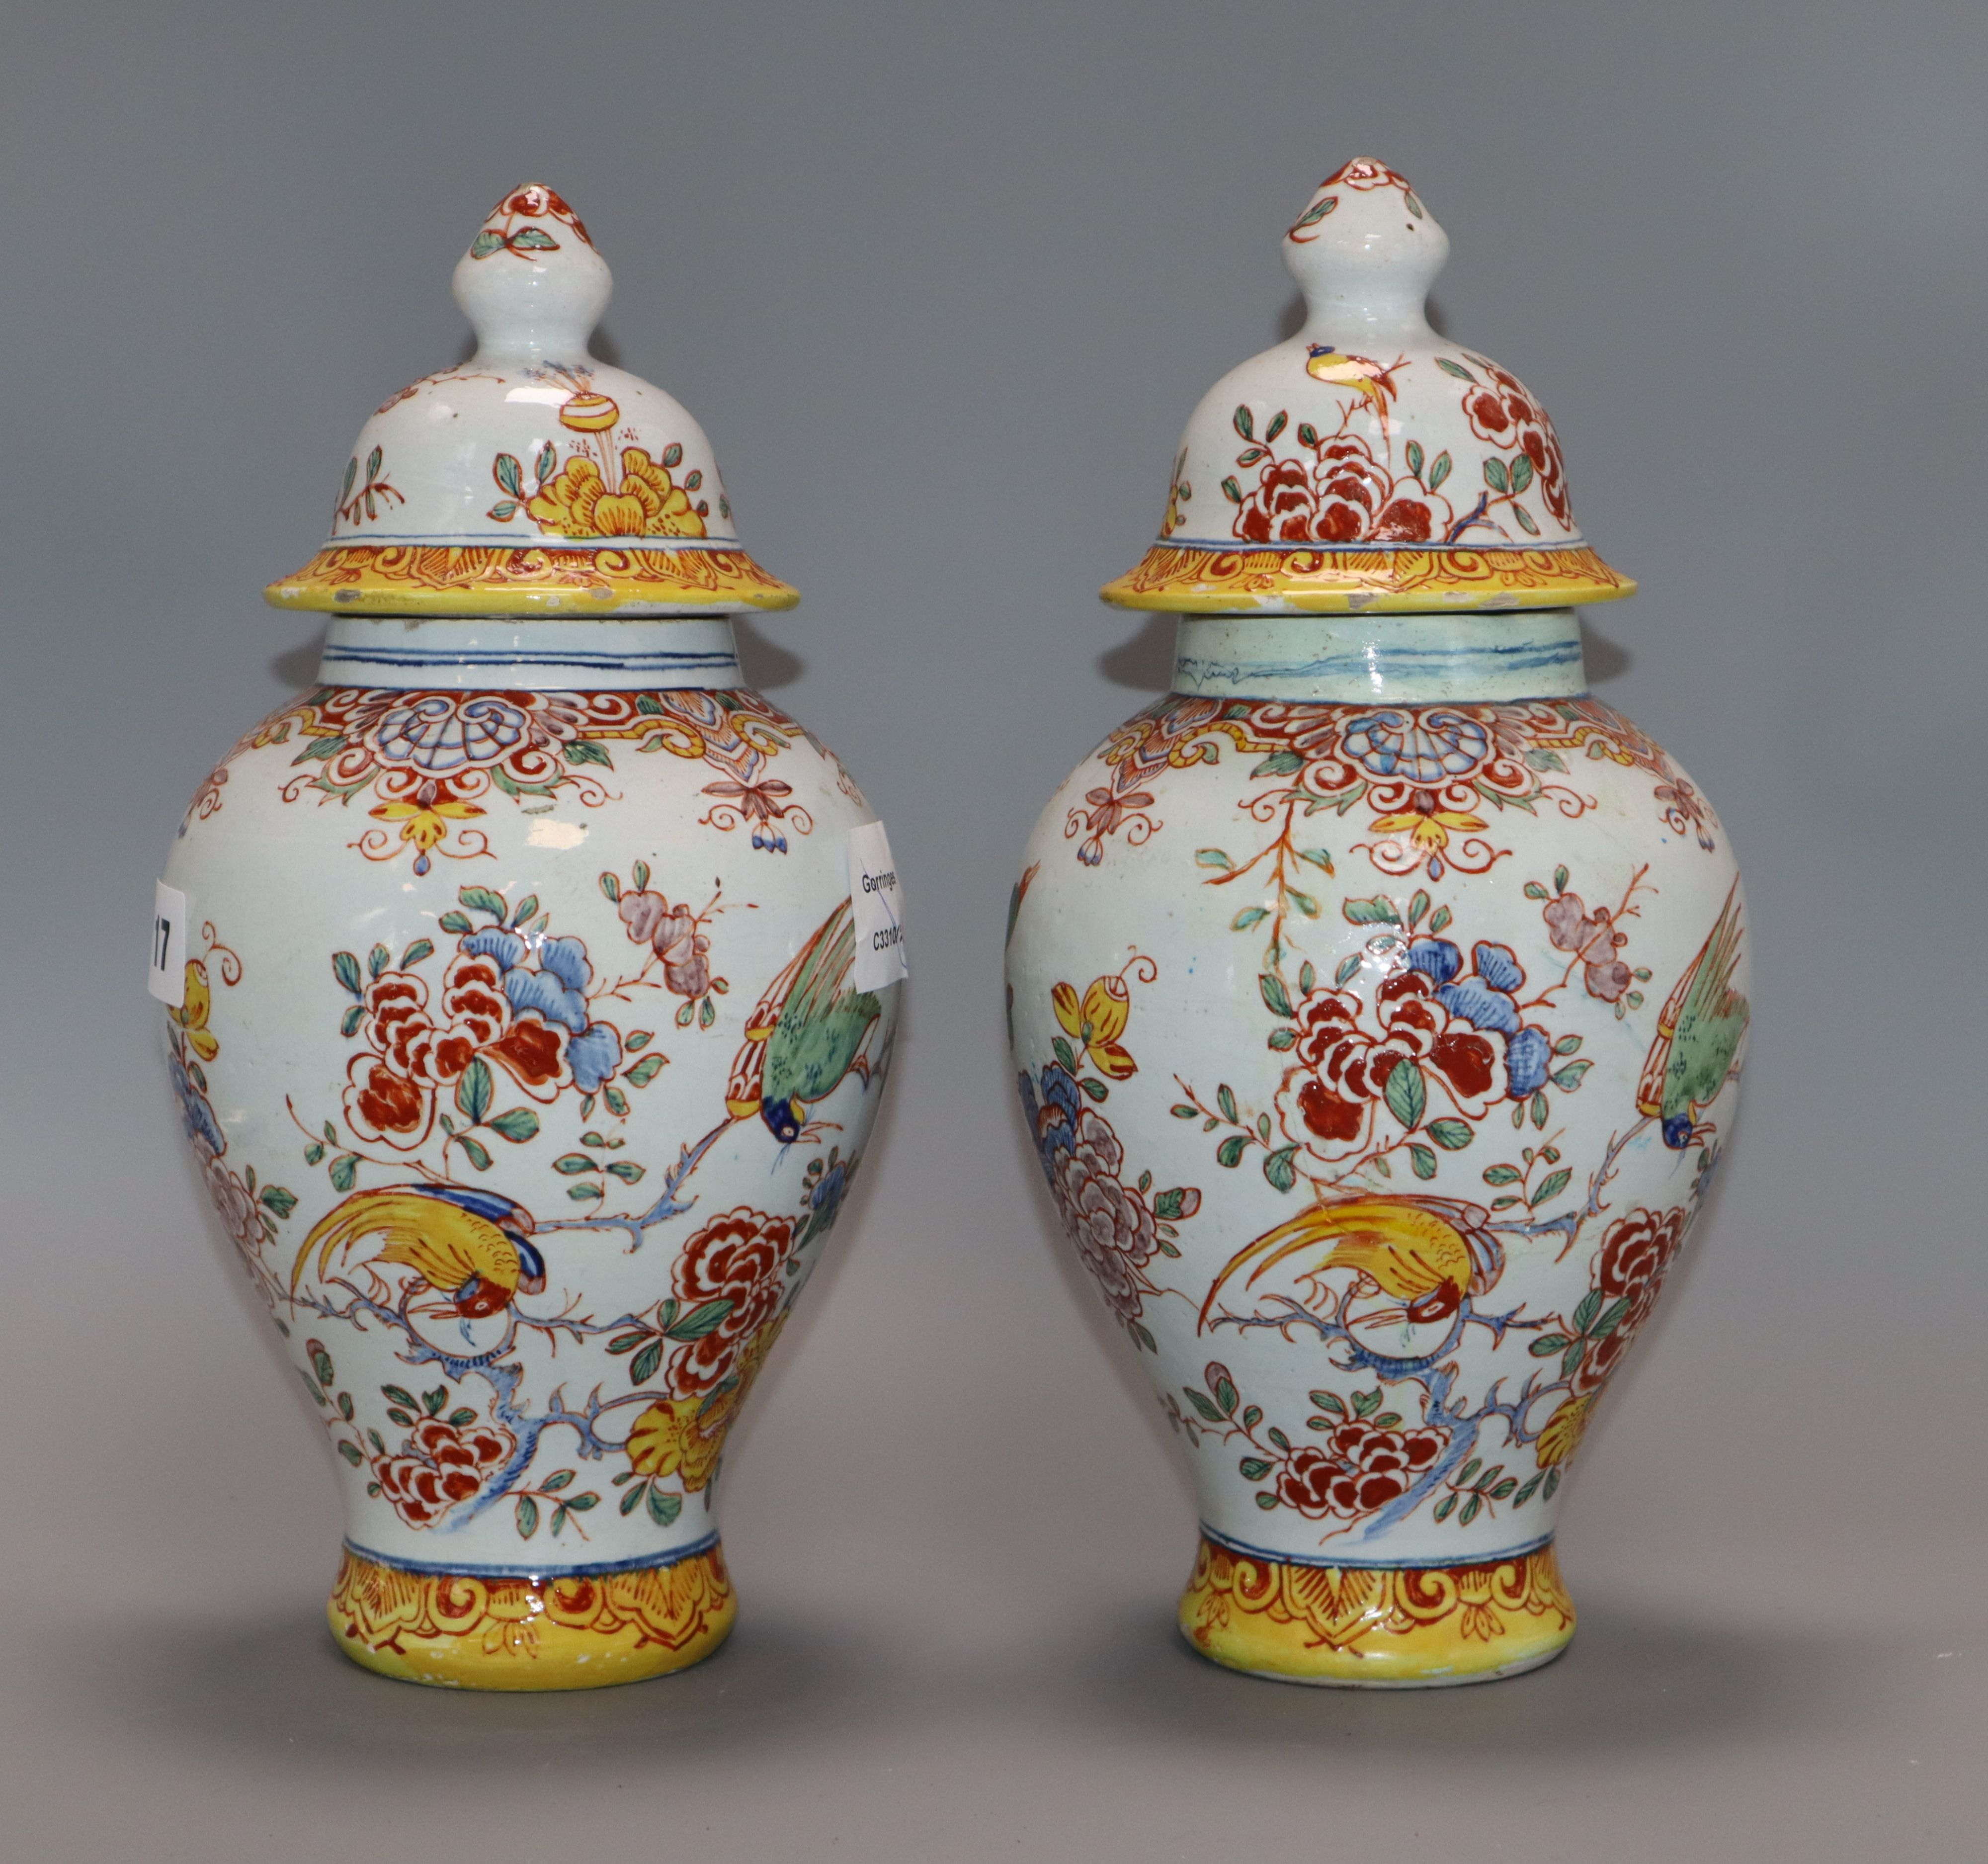 Lot 17 - A pair of 19th century French faience vases and covers height 29cm